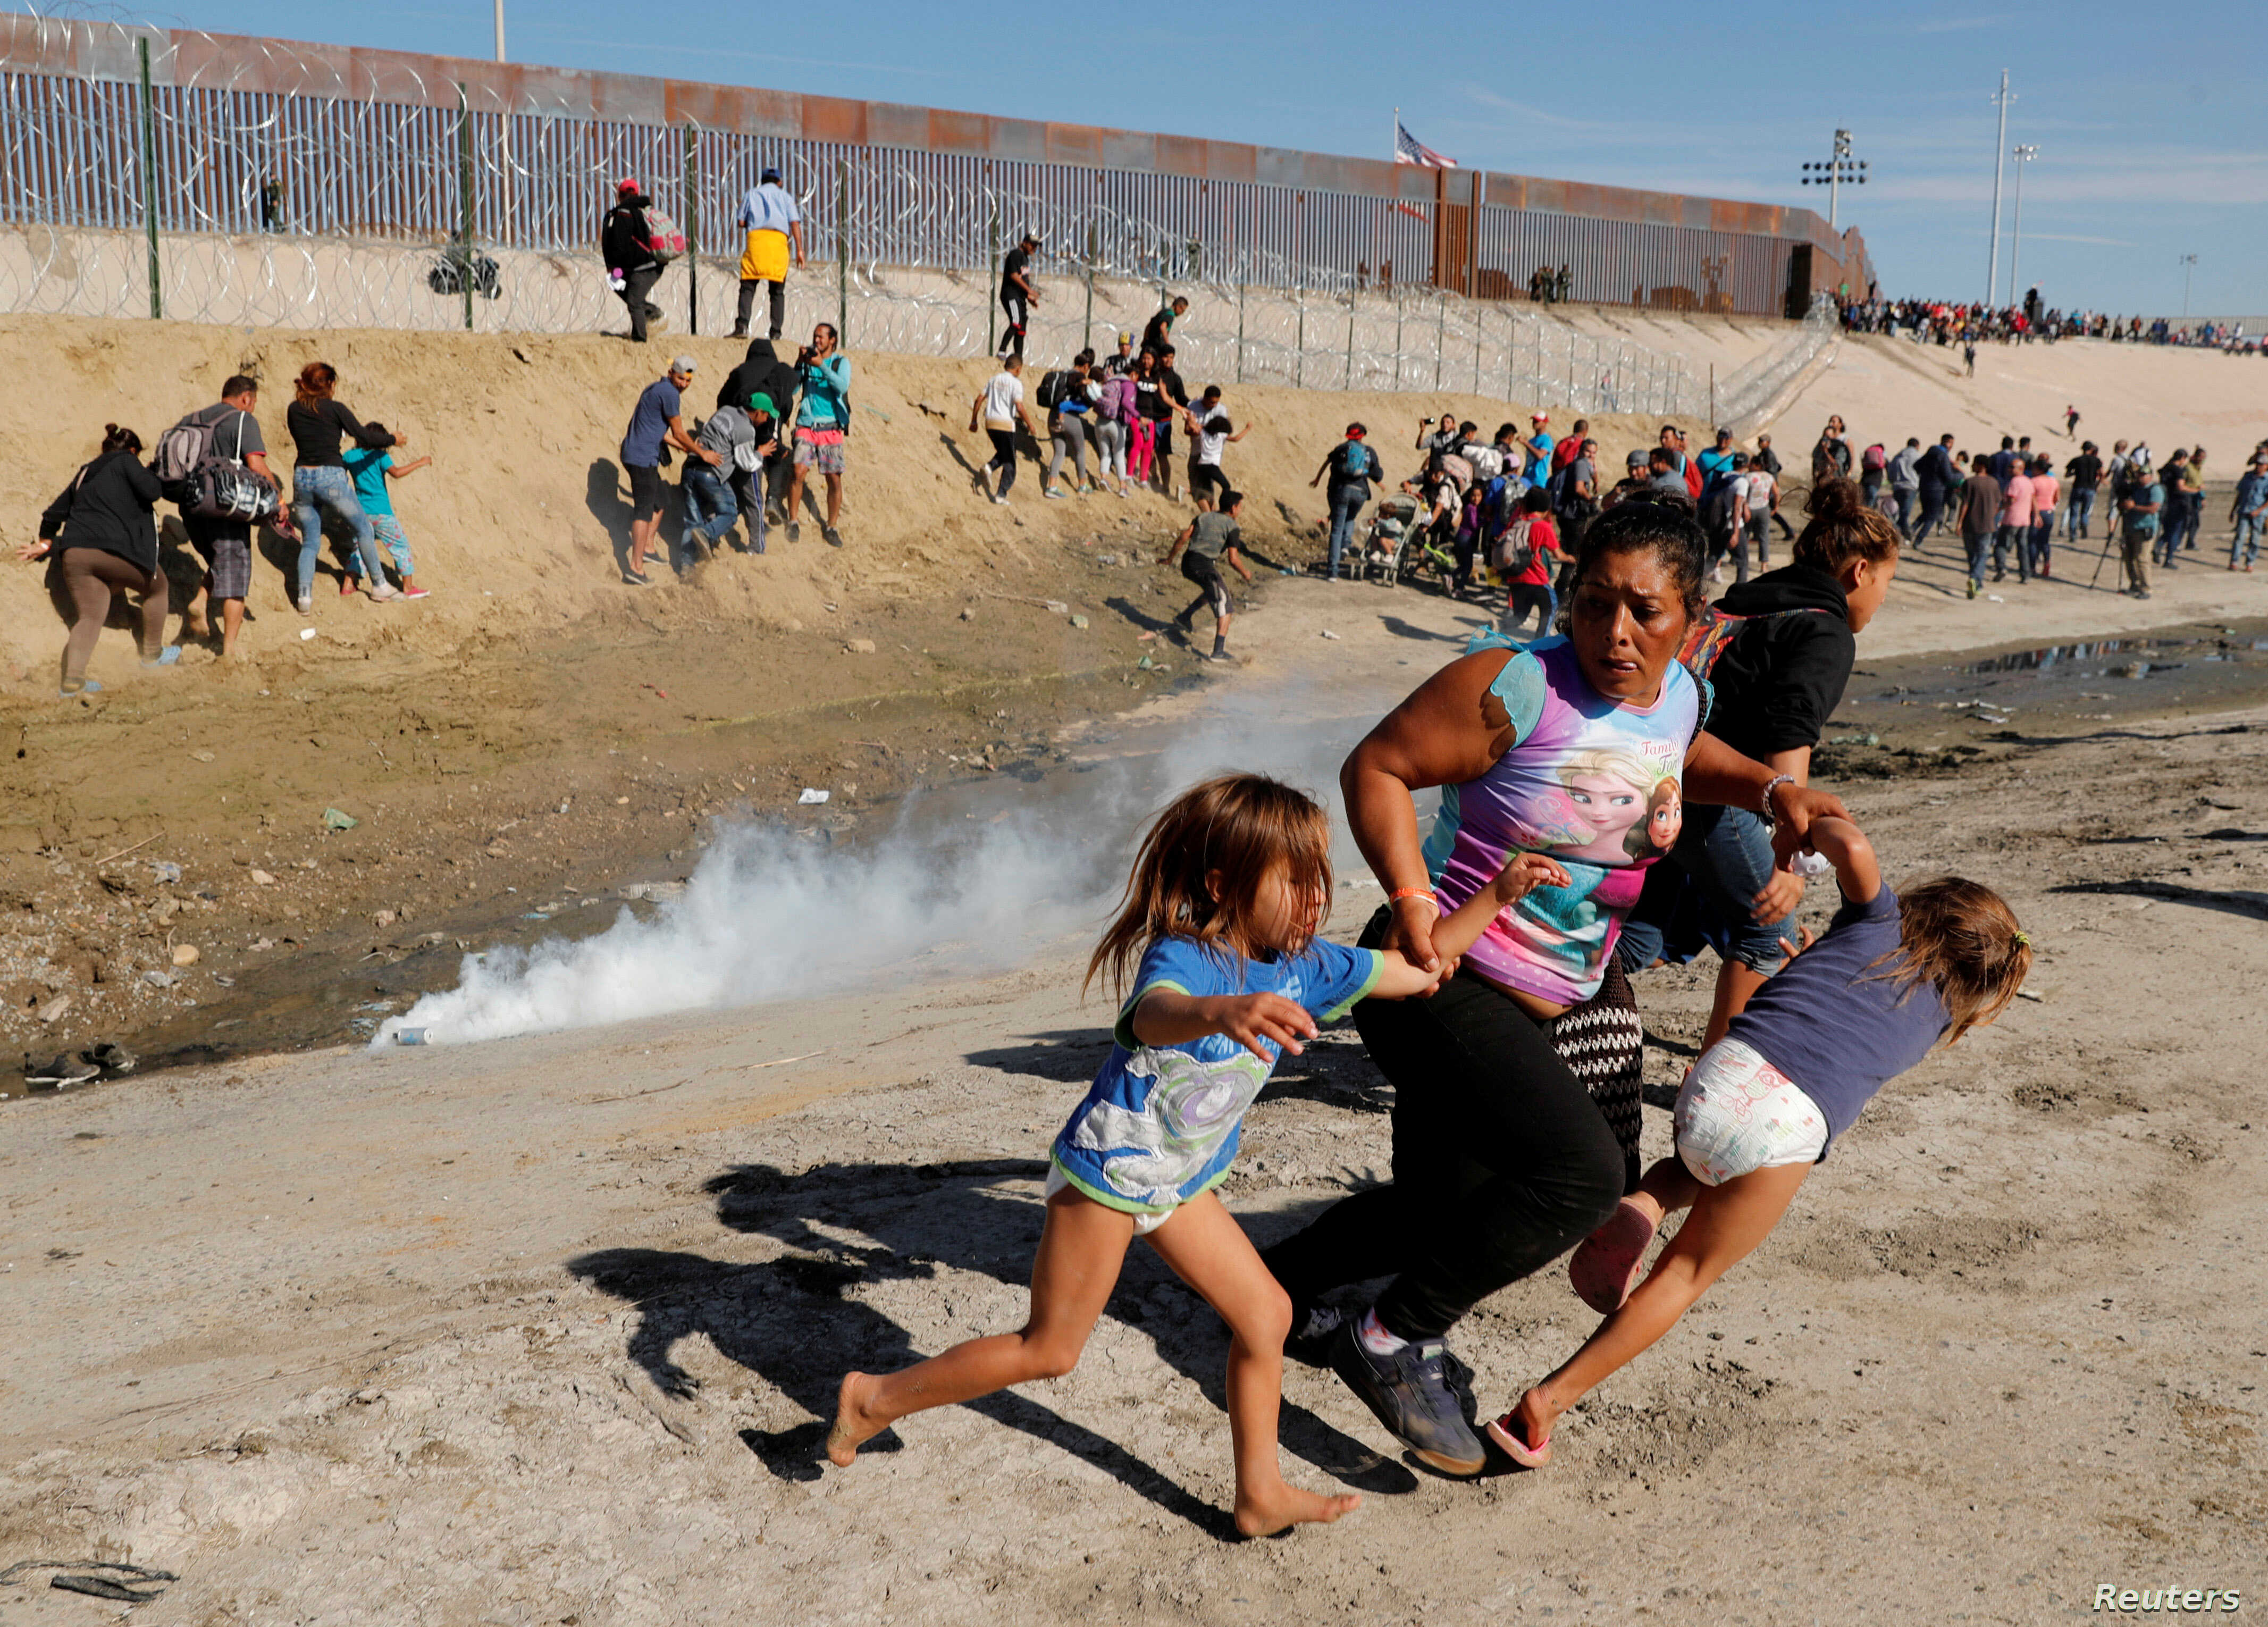 Maria Lila Meza Castro (C), a 39-year-old migrant woman from Honduras, runs away from tear gas with her five-year-old twin daughters Saira Nalleli Mejia Meza (L) and Cheili Nalleli Mejia Meza (R) in front of the border wall between the U.S and Mexico